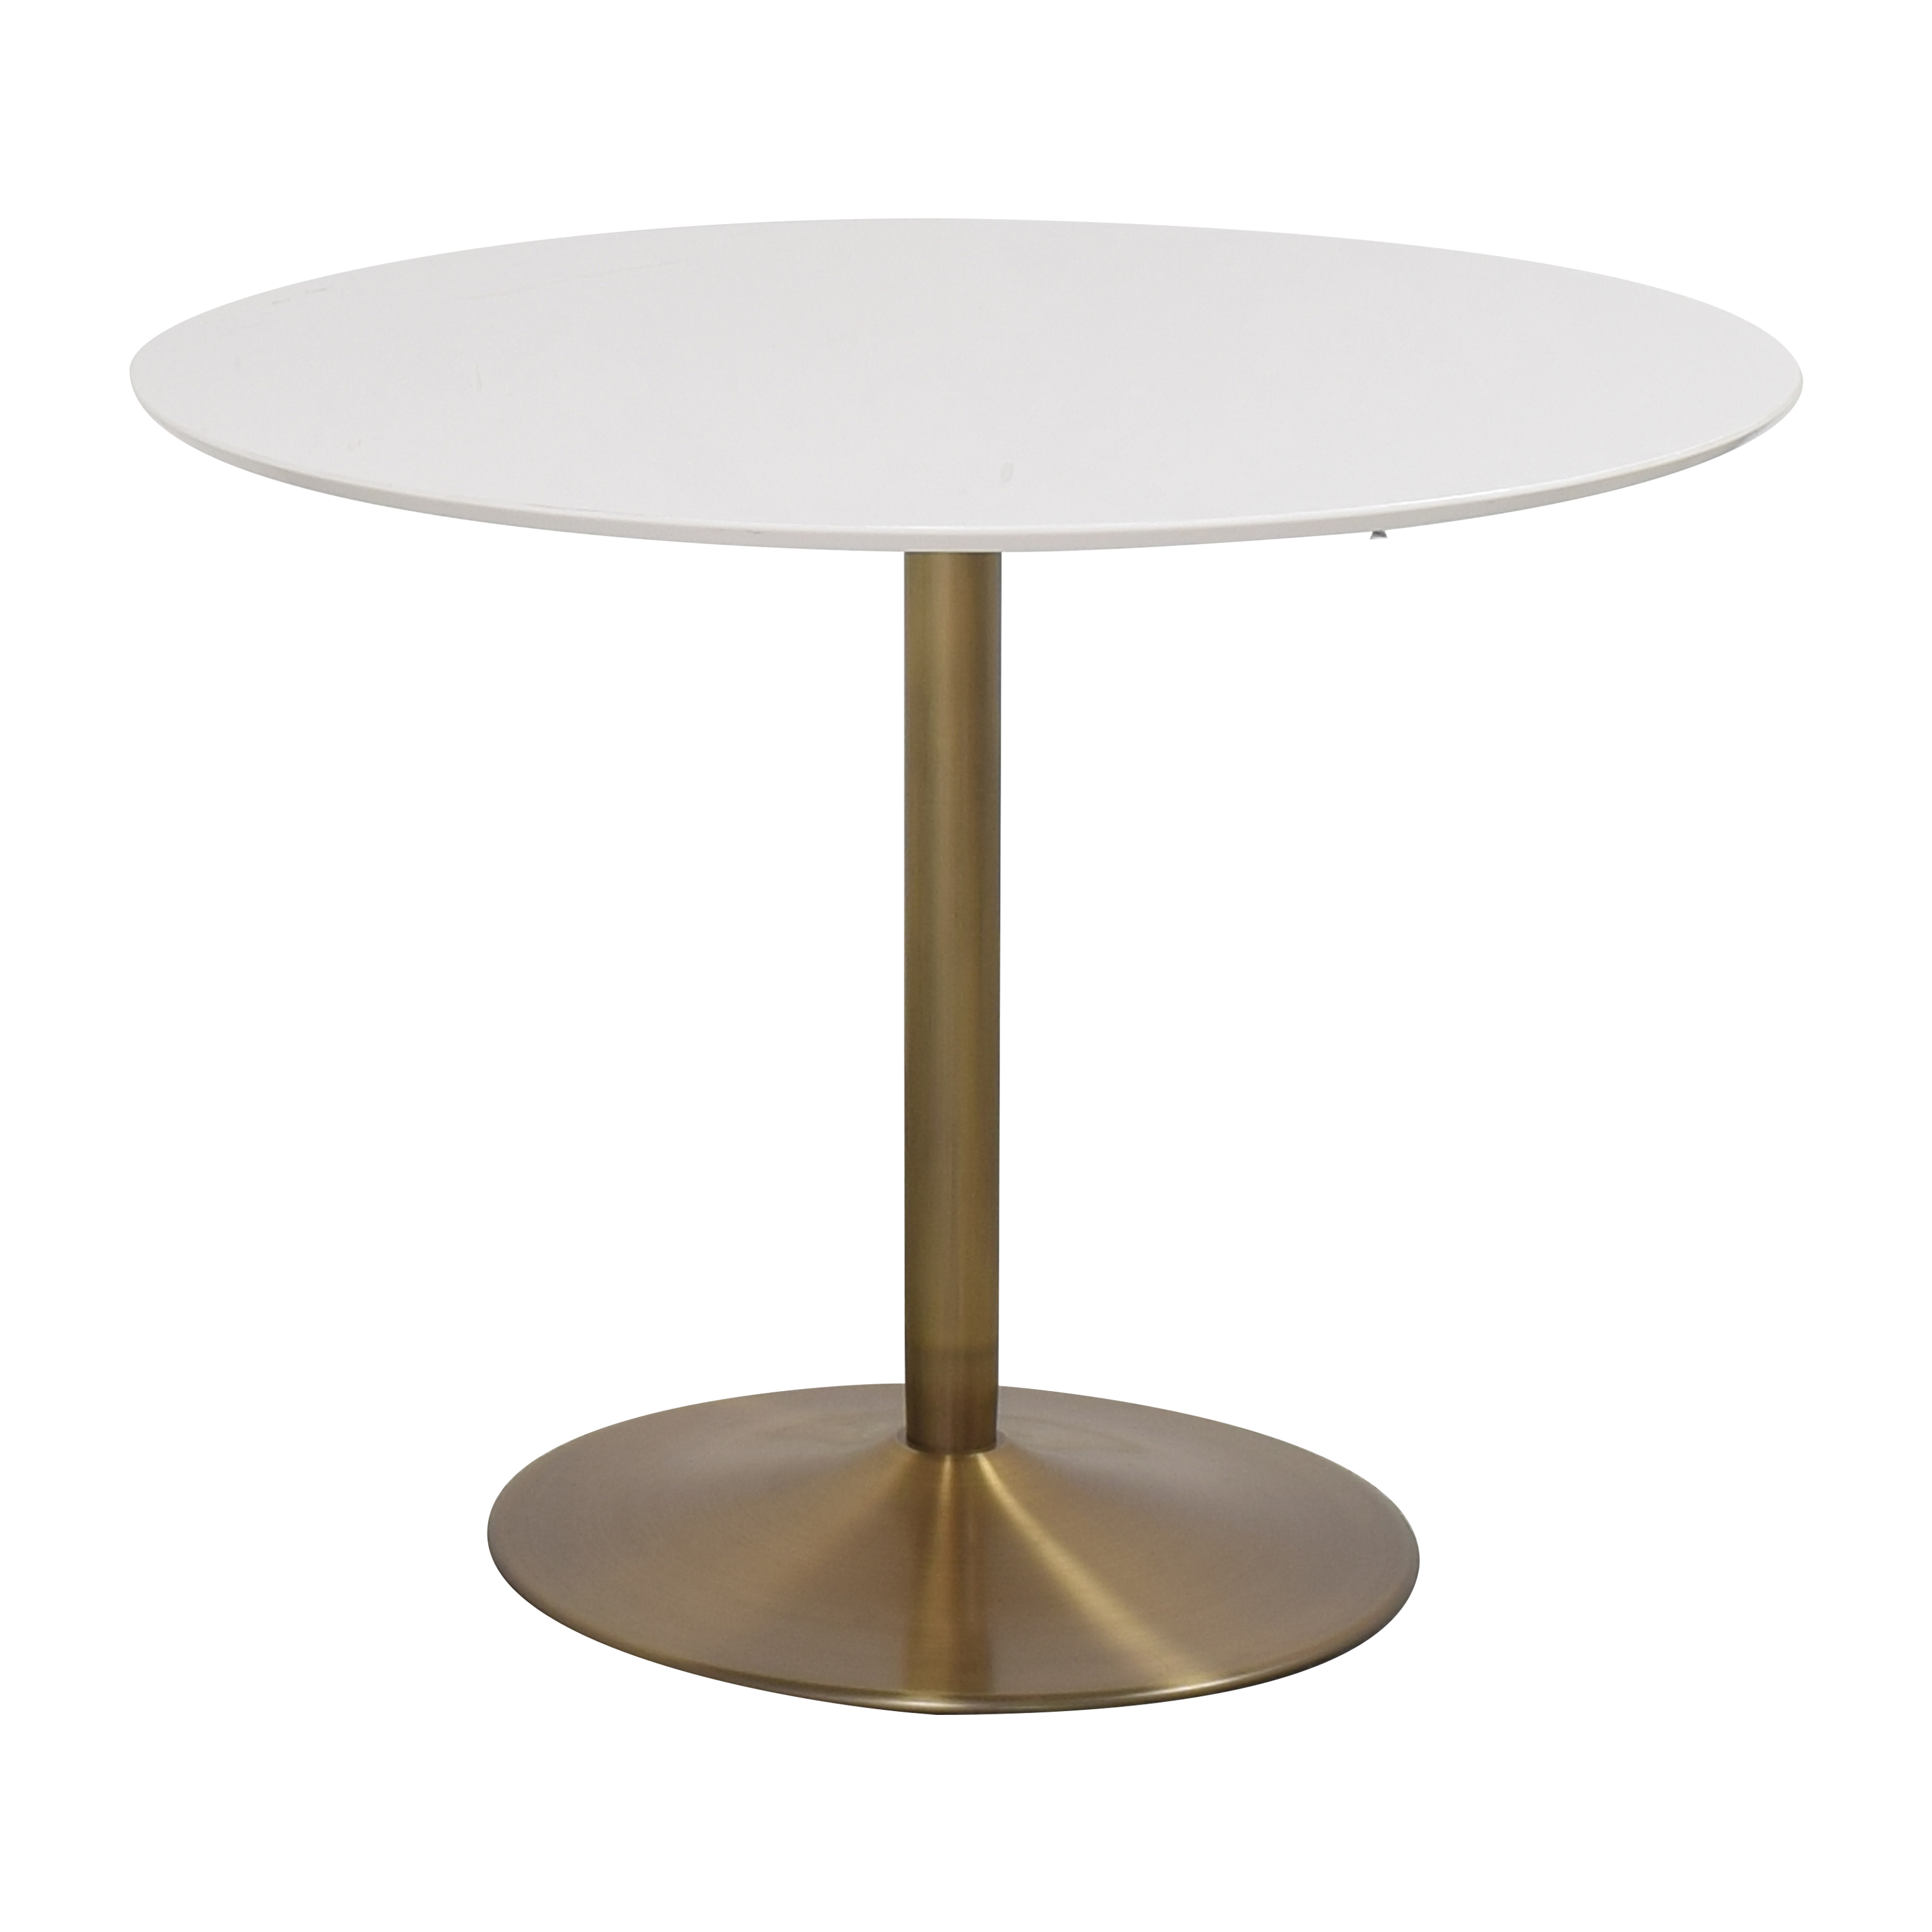 CB2 Odyssey Dining Table CB2